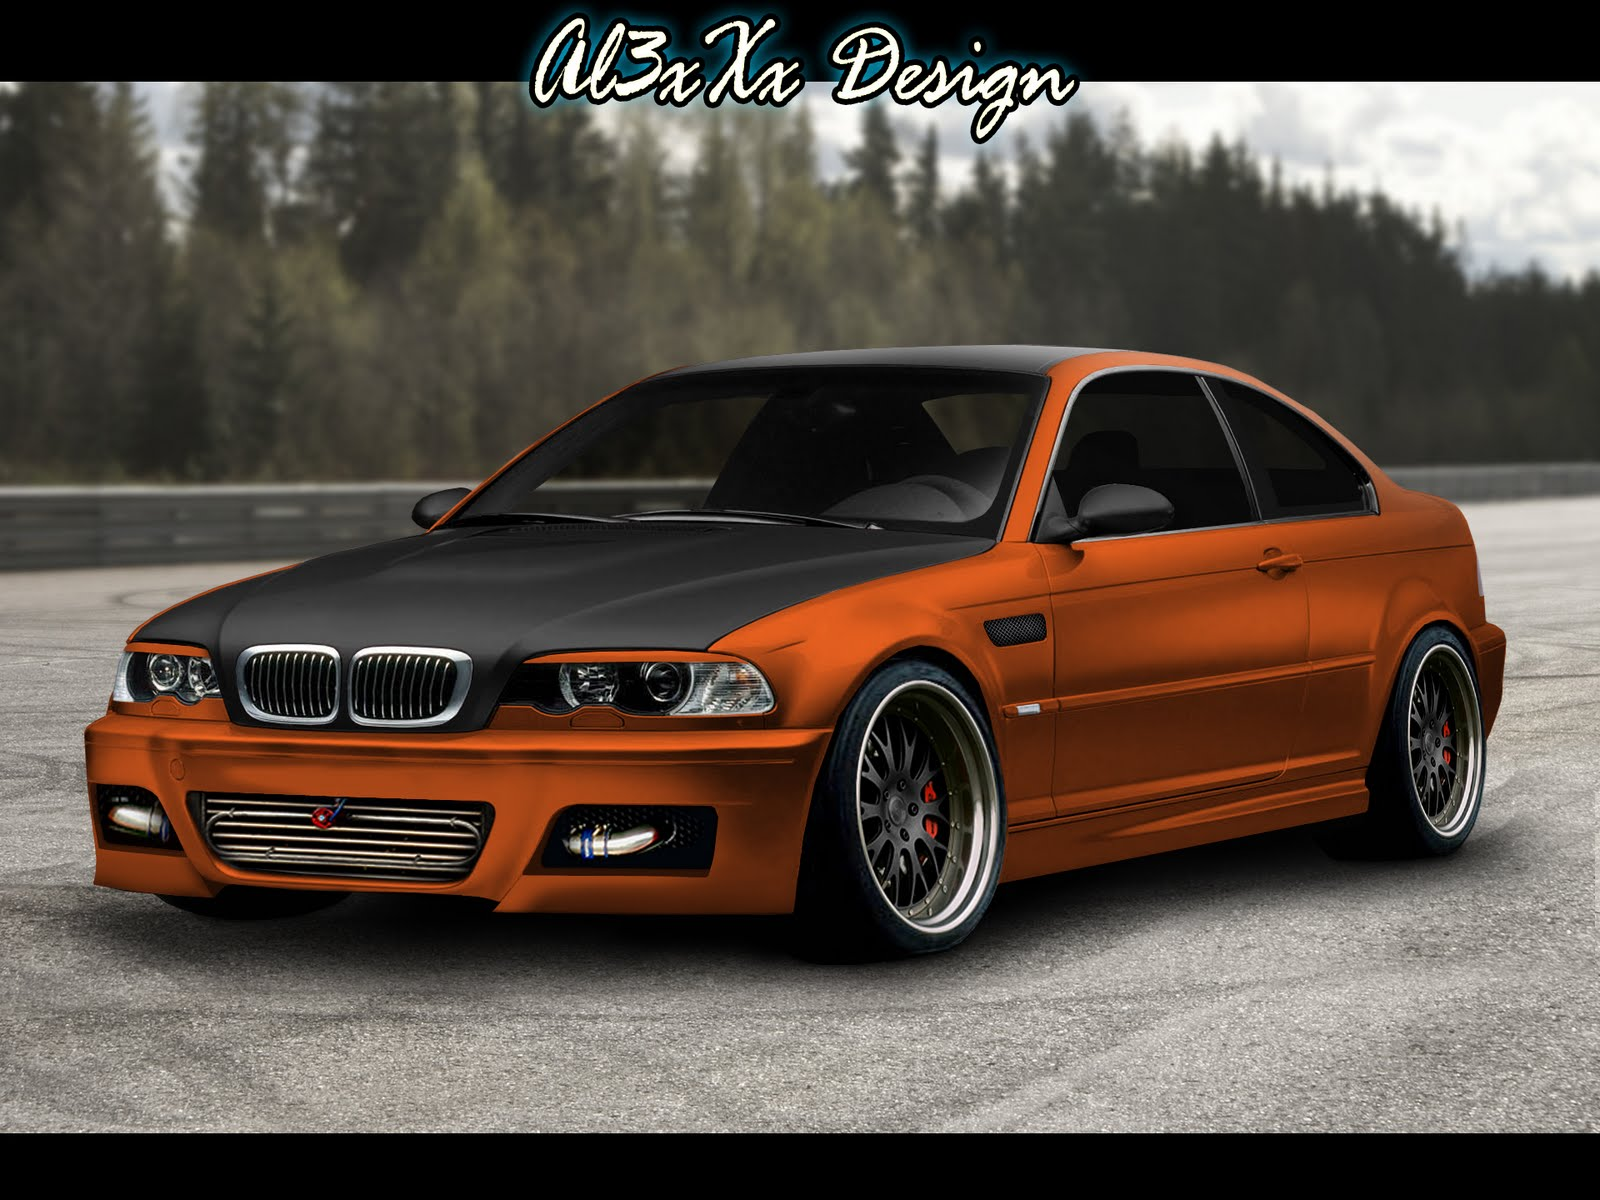 al3xxx design bmw e46 coupe virtual tuning contest. Black Bedroom Furniture Sets. Home Design Ideas